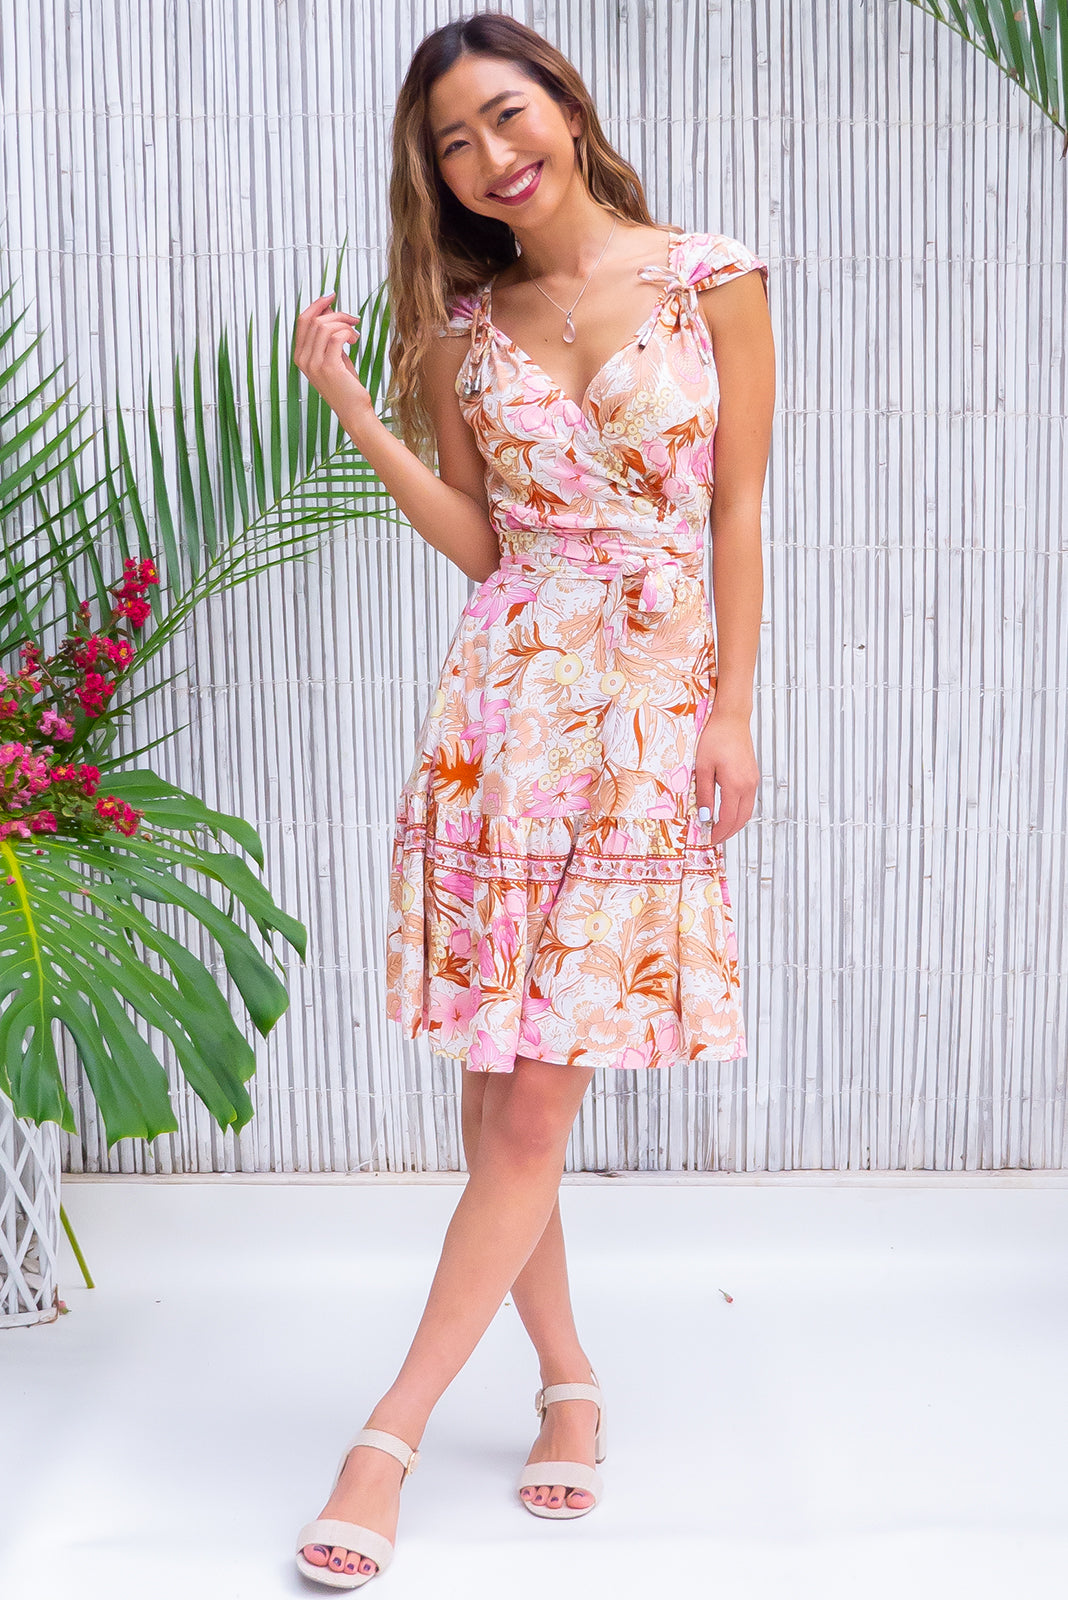 The vintage inspired dress, Sea Breeze Protea Pink Wrap Dress features short sleeves with removable ties, flattering adjustable wrap design, elasticated waist band at the back, frill hem with border print, cream base with summery floral folk print in pinks, amber, tan and pastel lemon in woven 100% rayon.